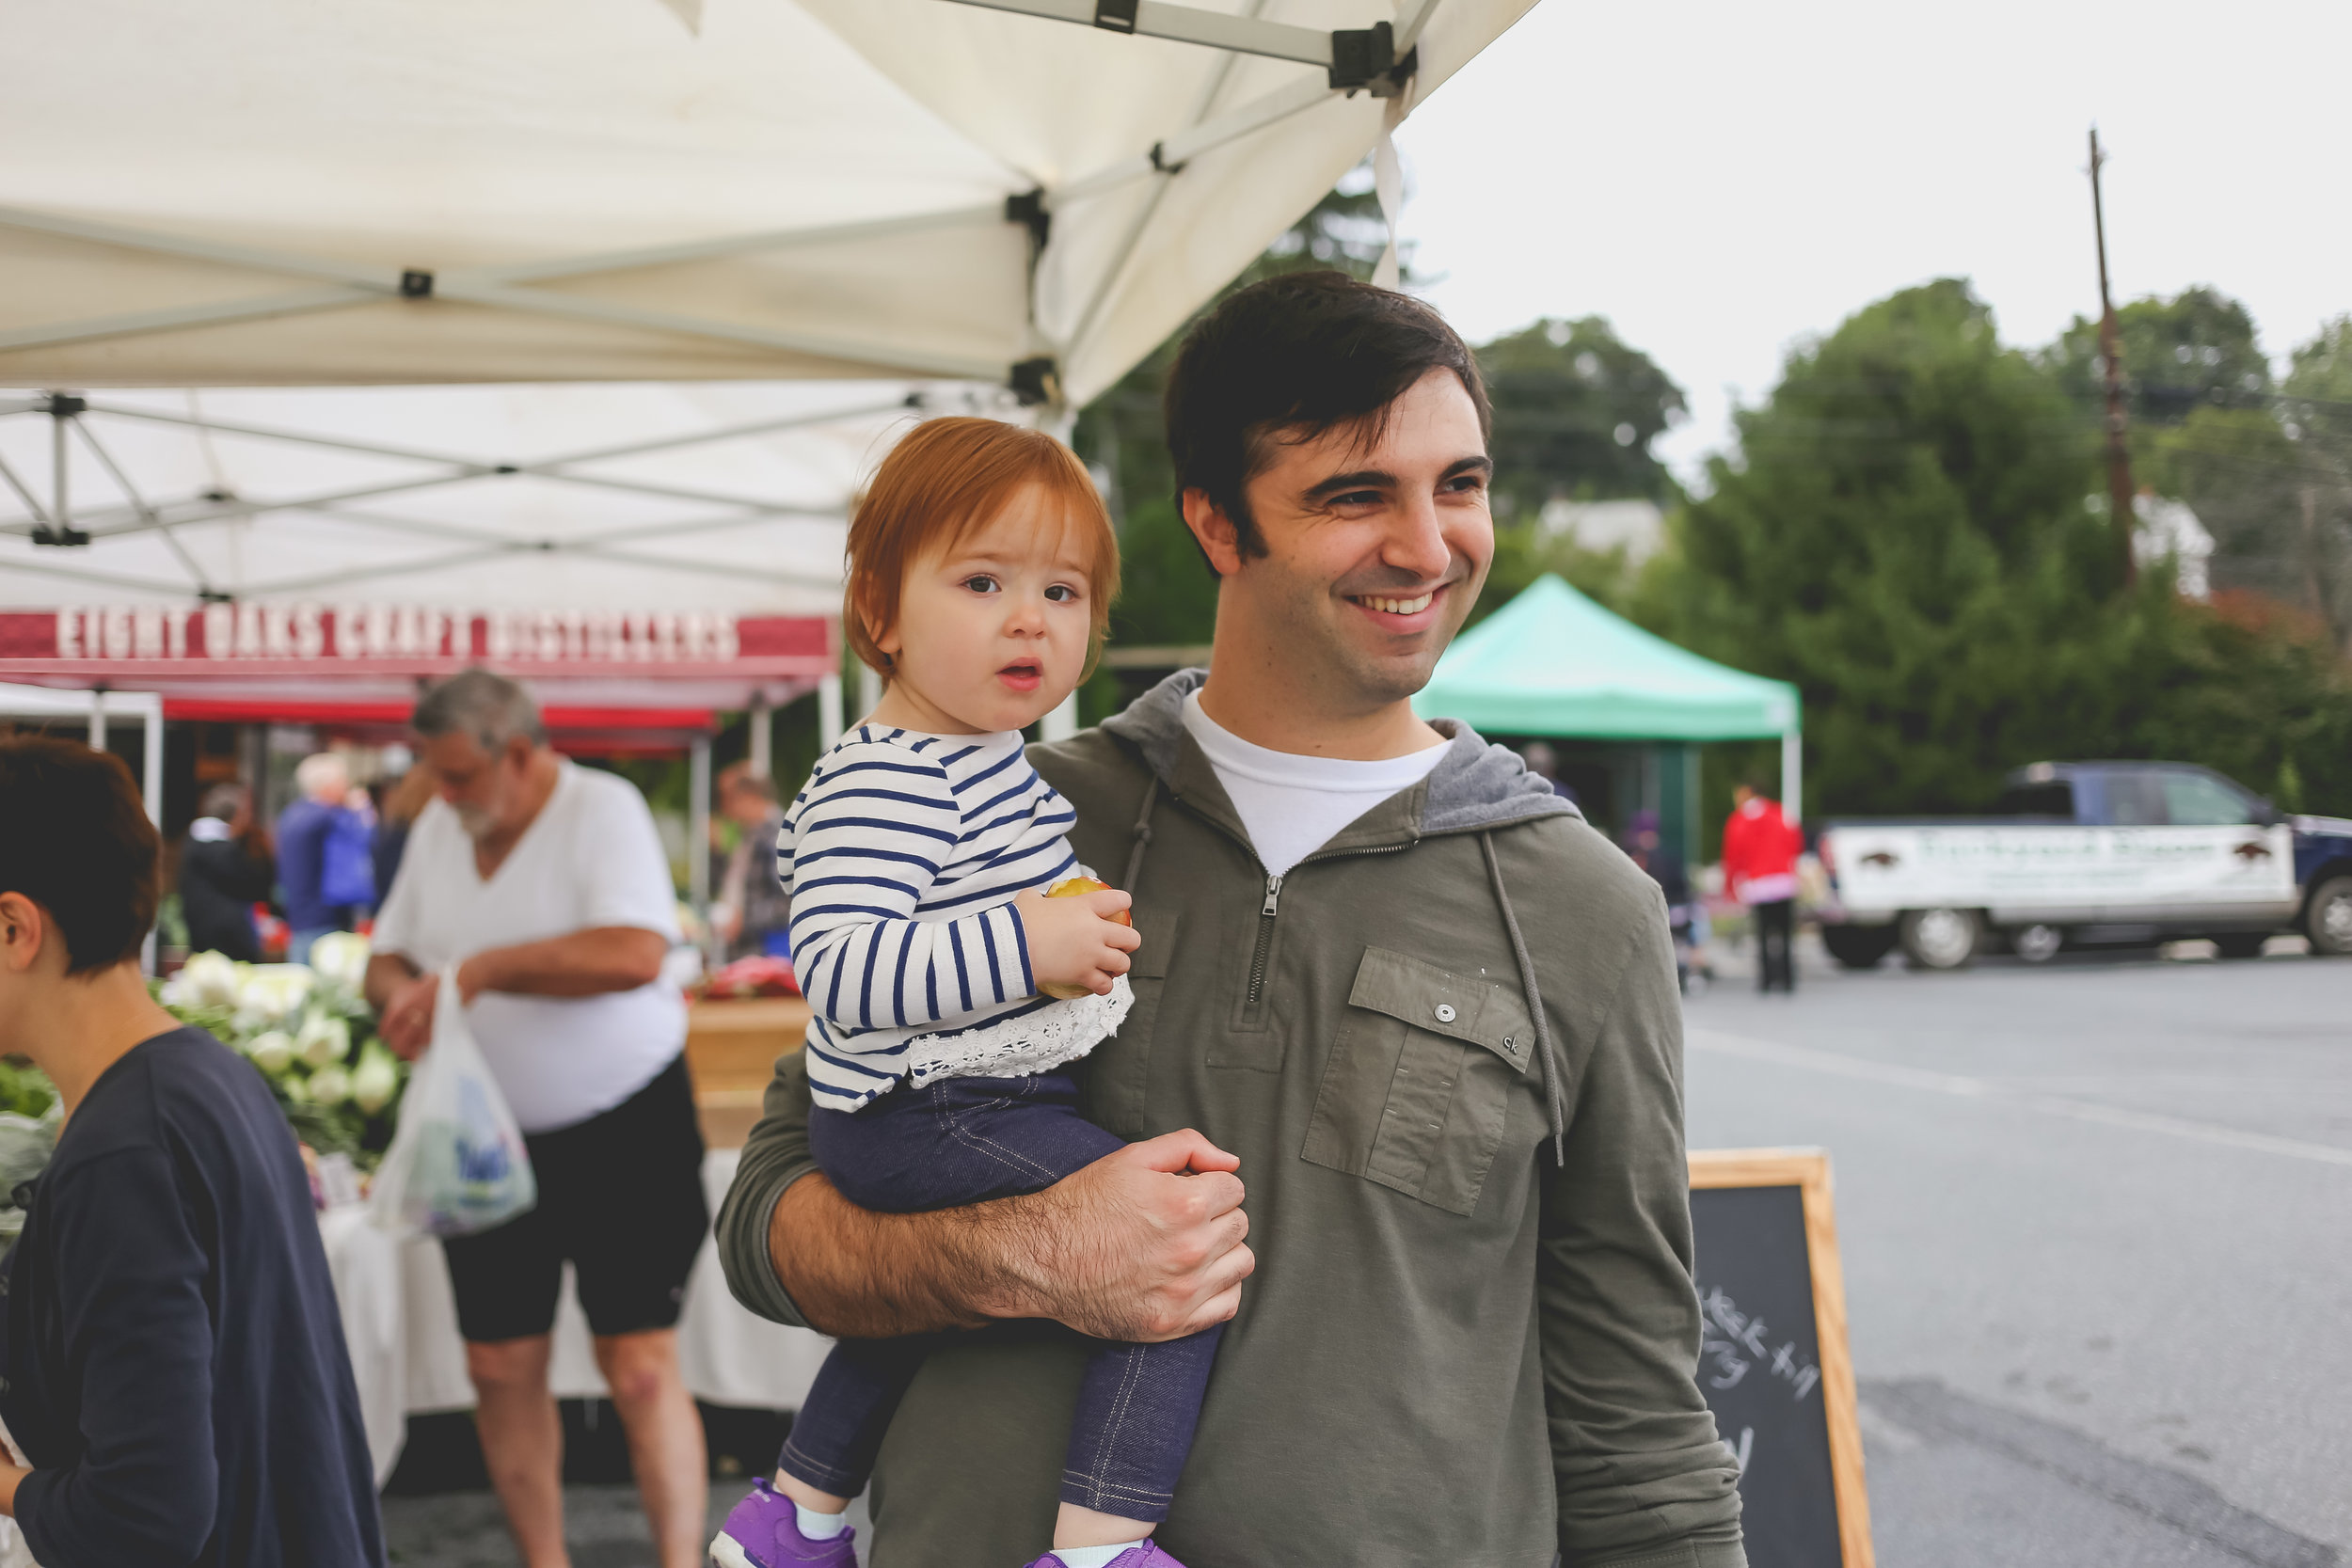 Father holding his baby daughter at the farmer's market in Emmaus, PA.